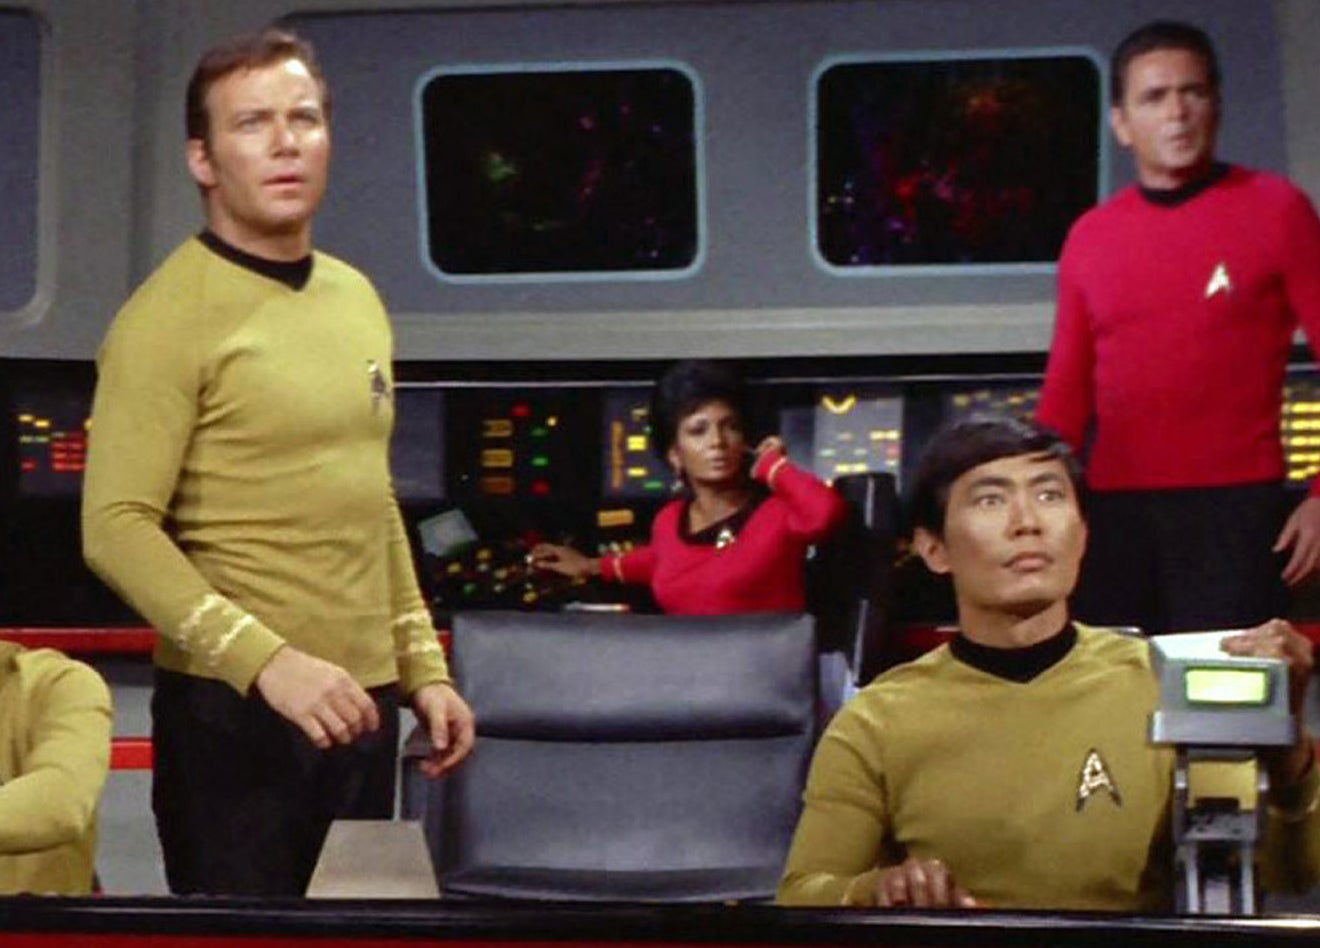 Captain Kirk and Sulu star out the front of the ship